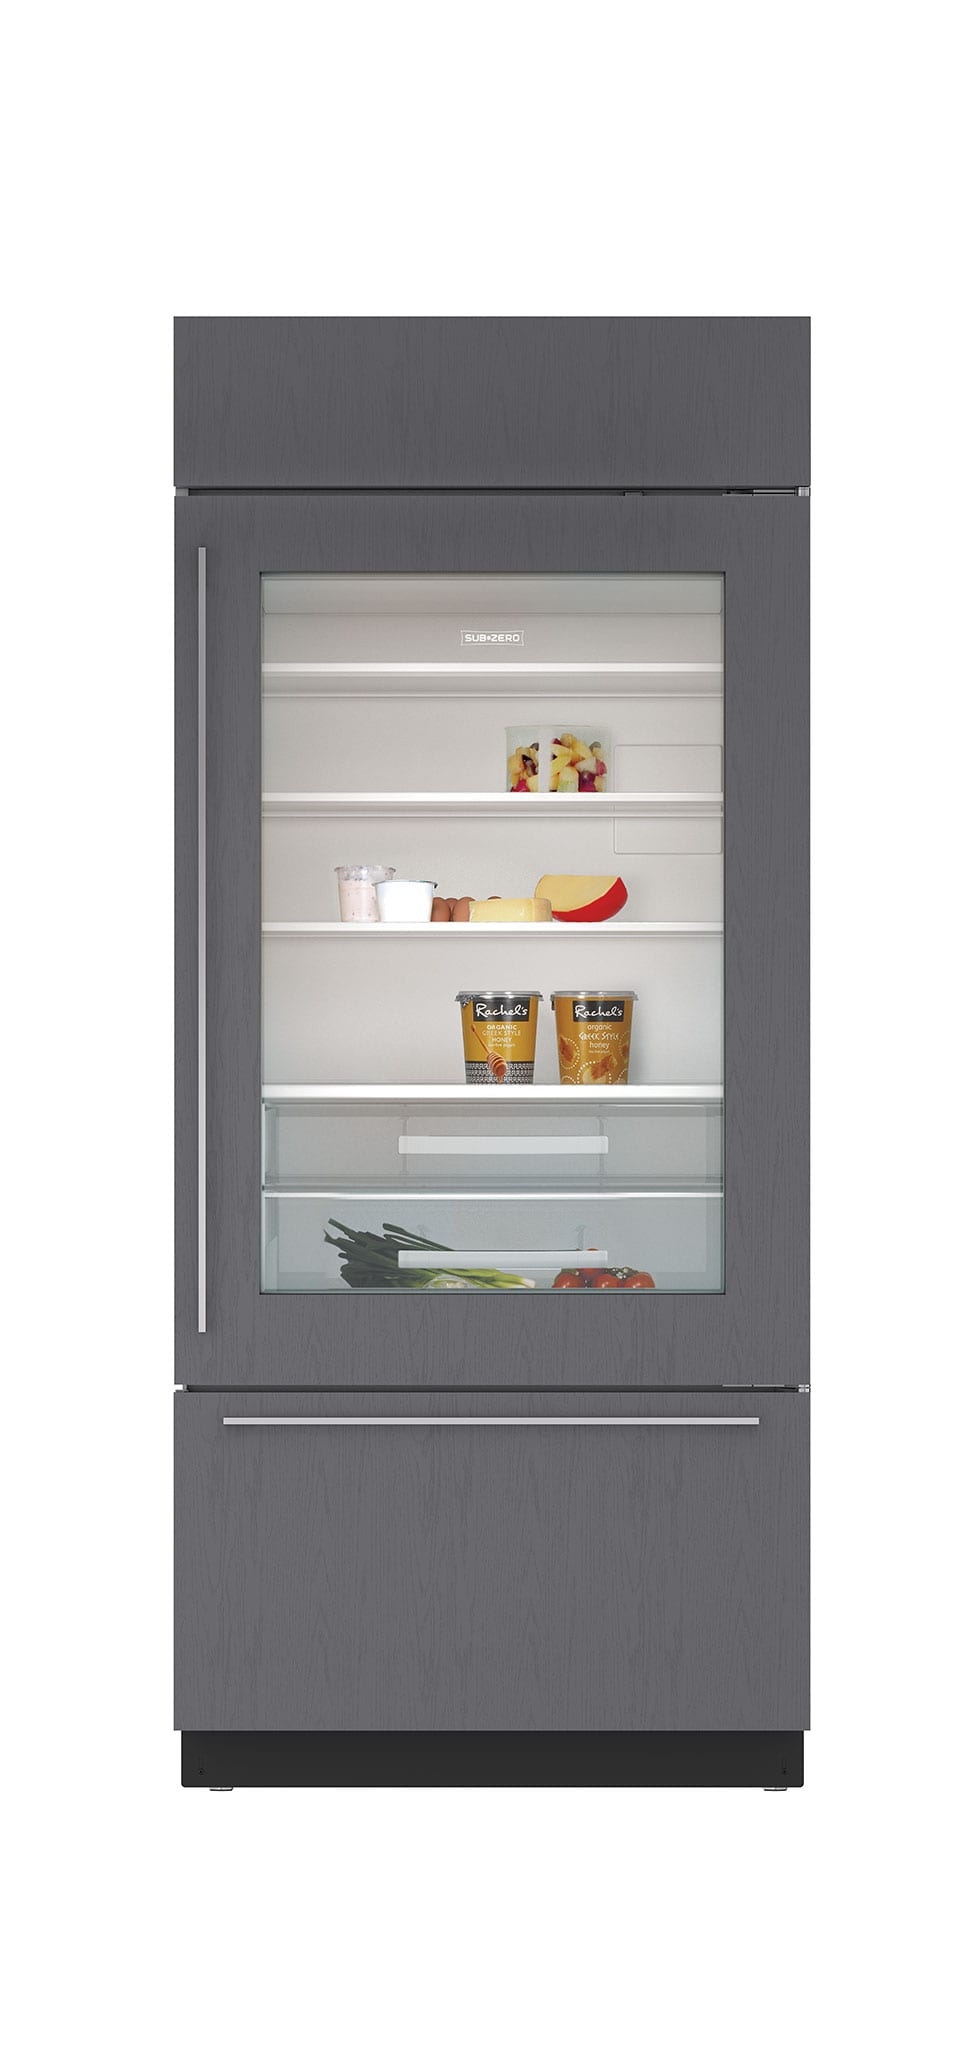 36 built in over and under glass door refrigerator freezer panel ready - Glass door refrigerator freezer ...